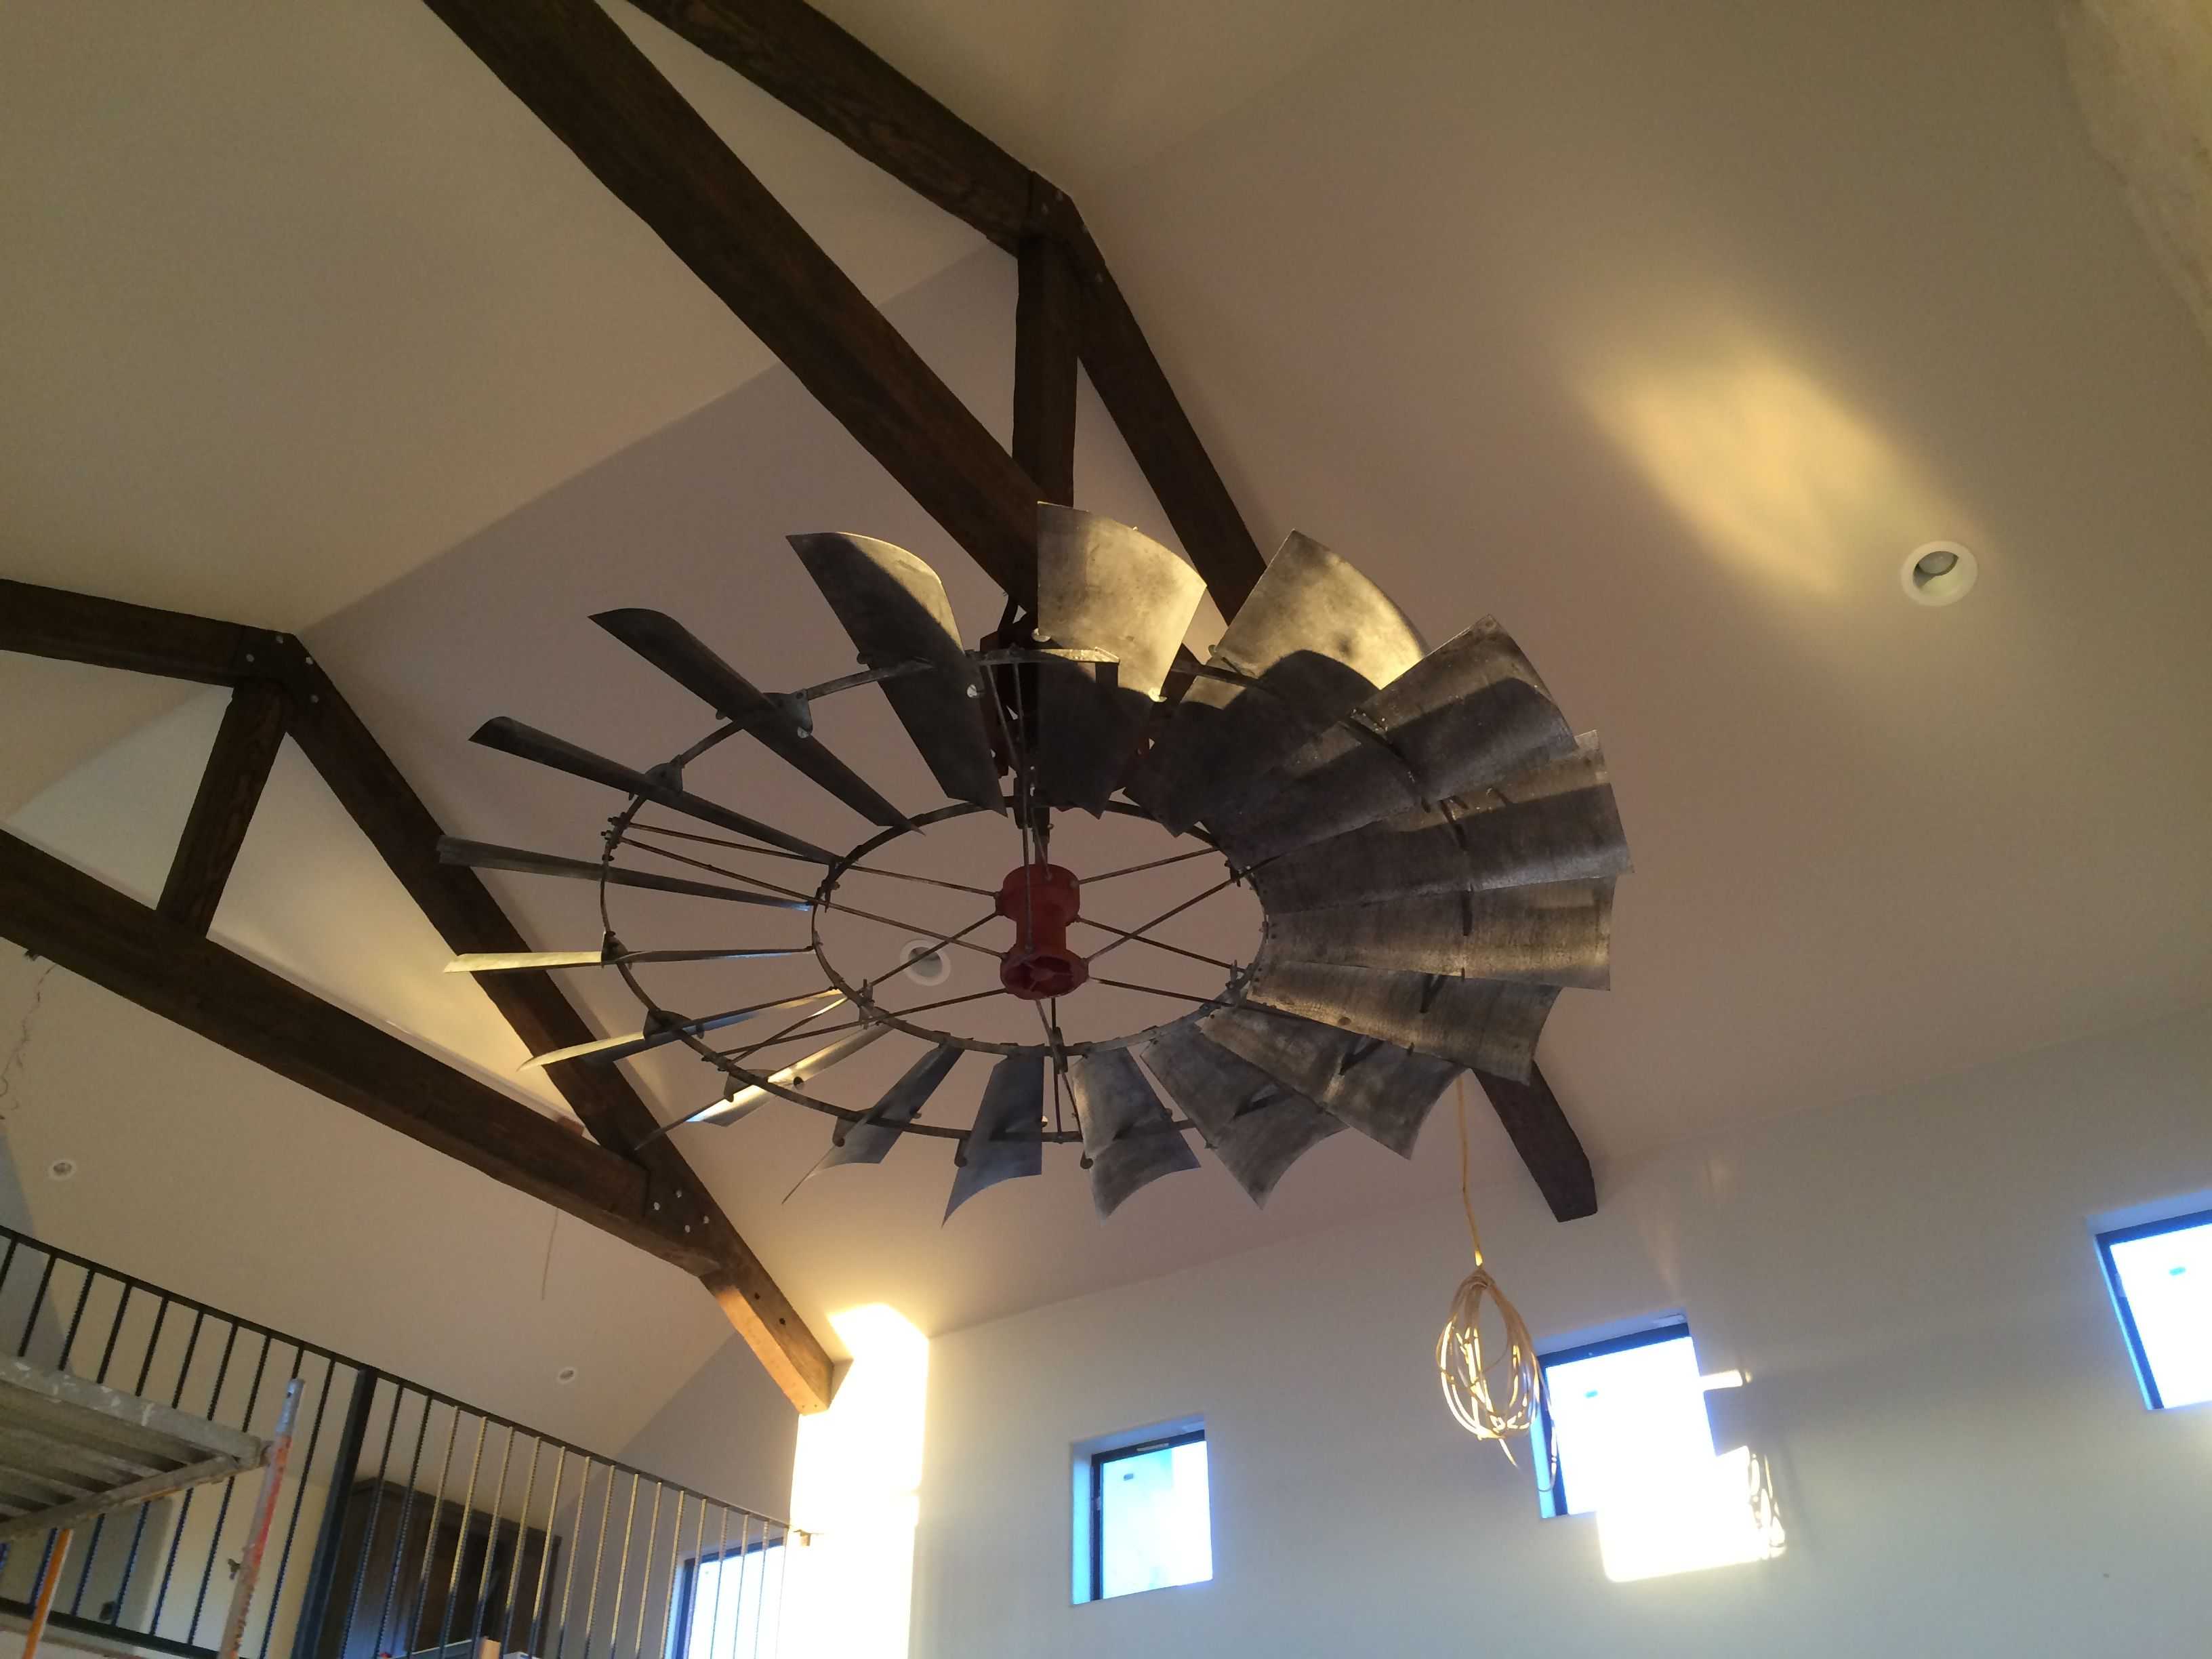 8 reproduction vintage windmill ceiling fan wcftx windmill